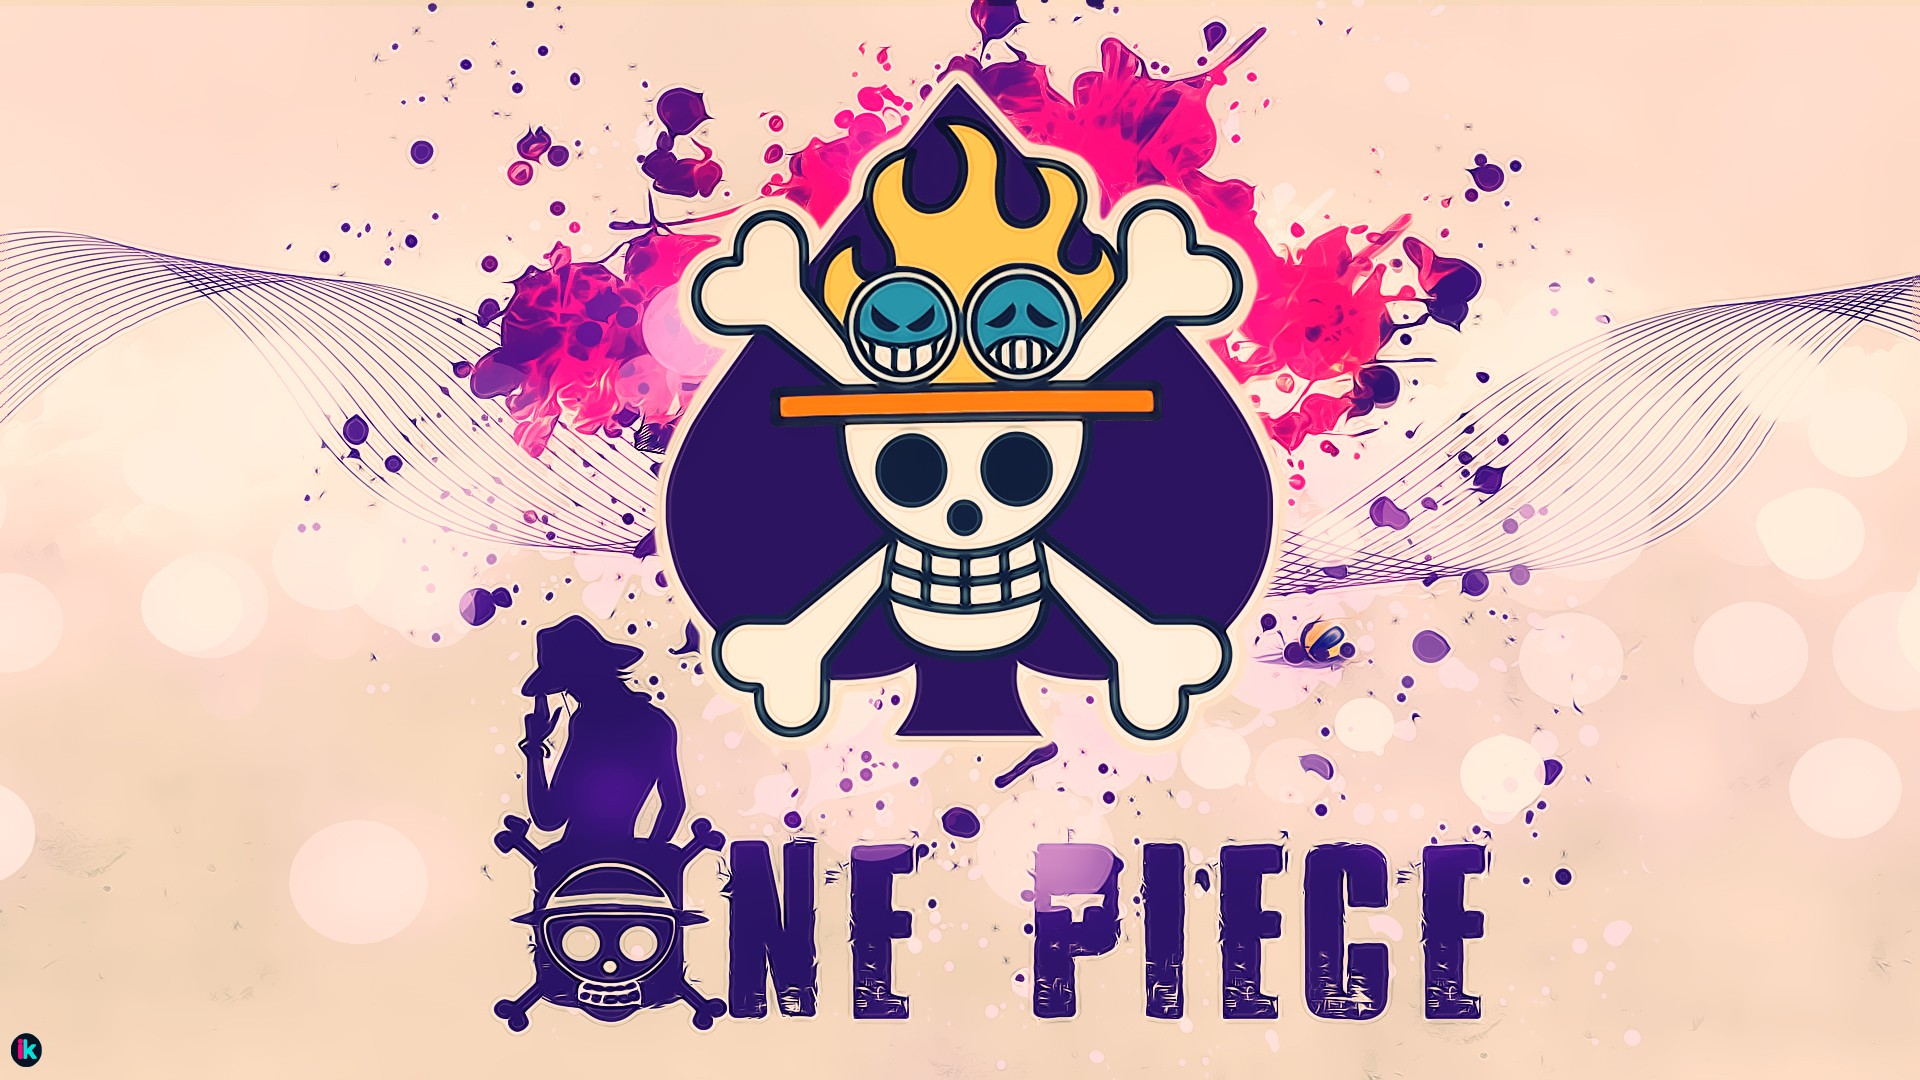 Portgas D Ace Wallpaper 3d One Piece Portgas D Ace Paint Splatter Wallpapers Hd